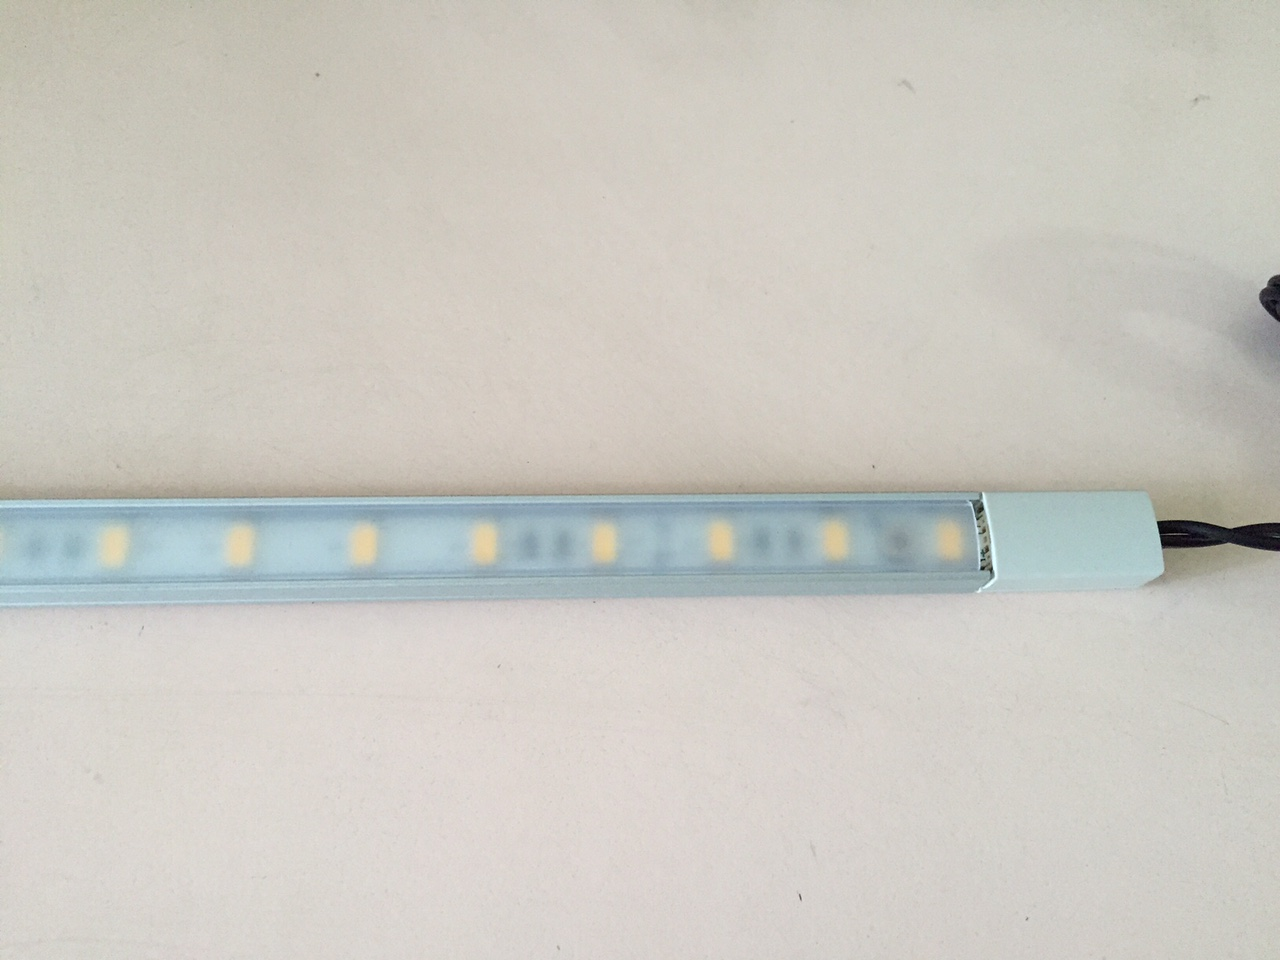 LED_Light_Bar-1